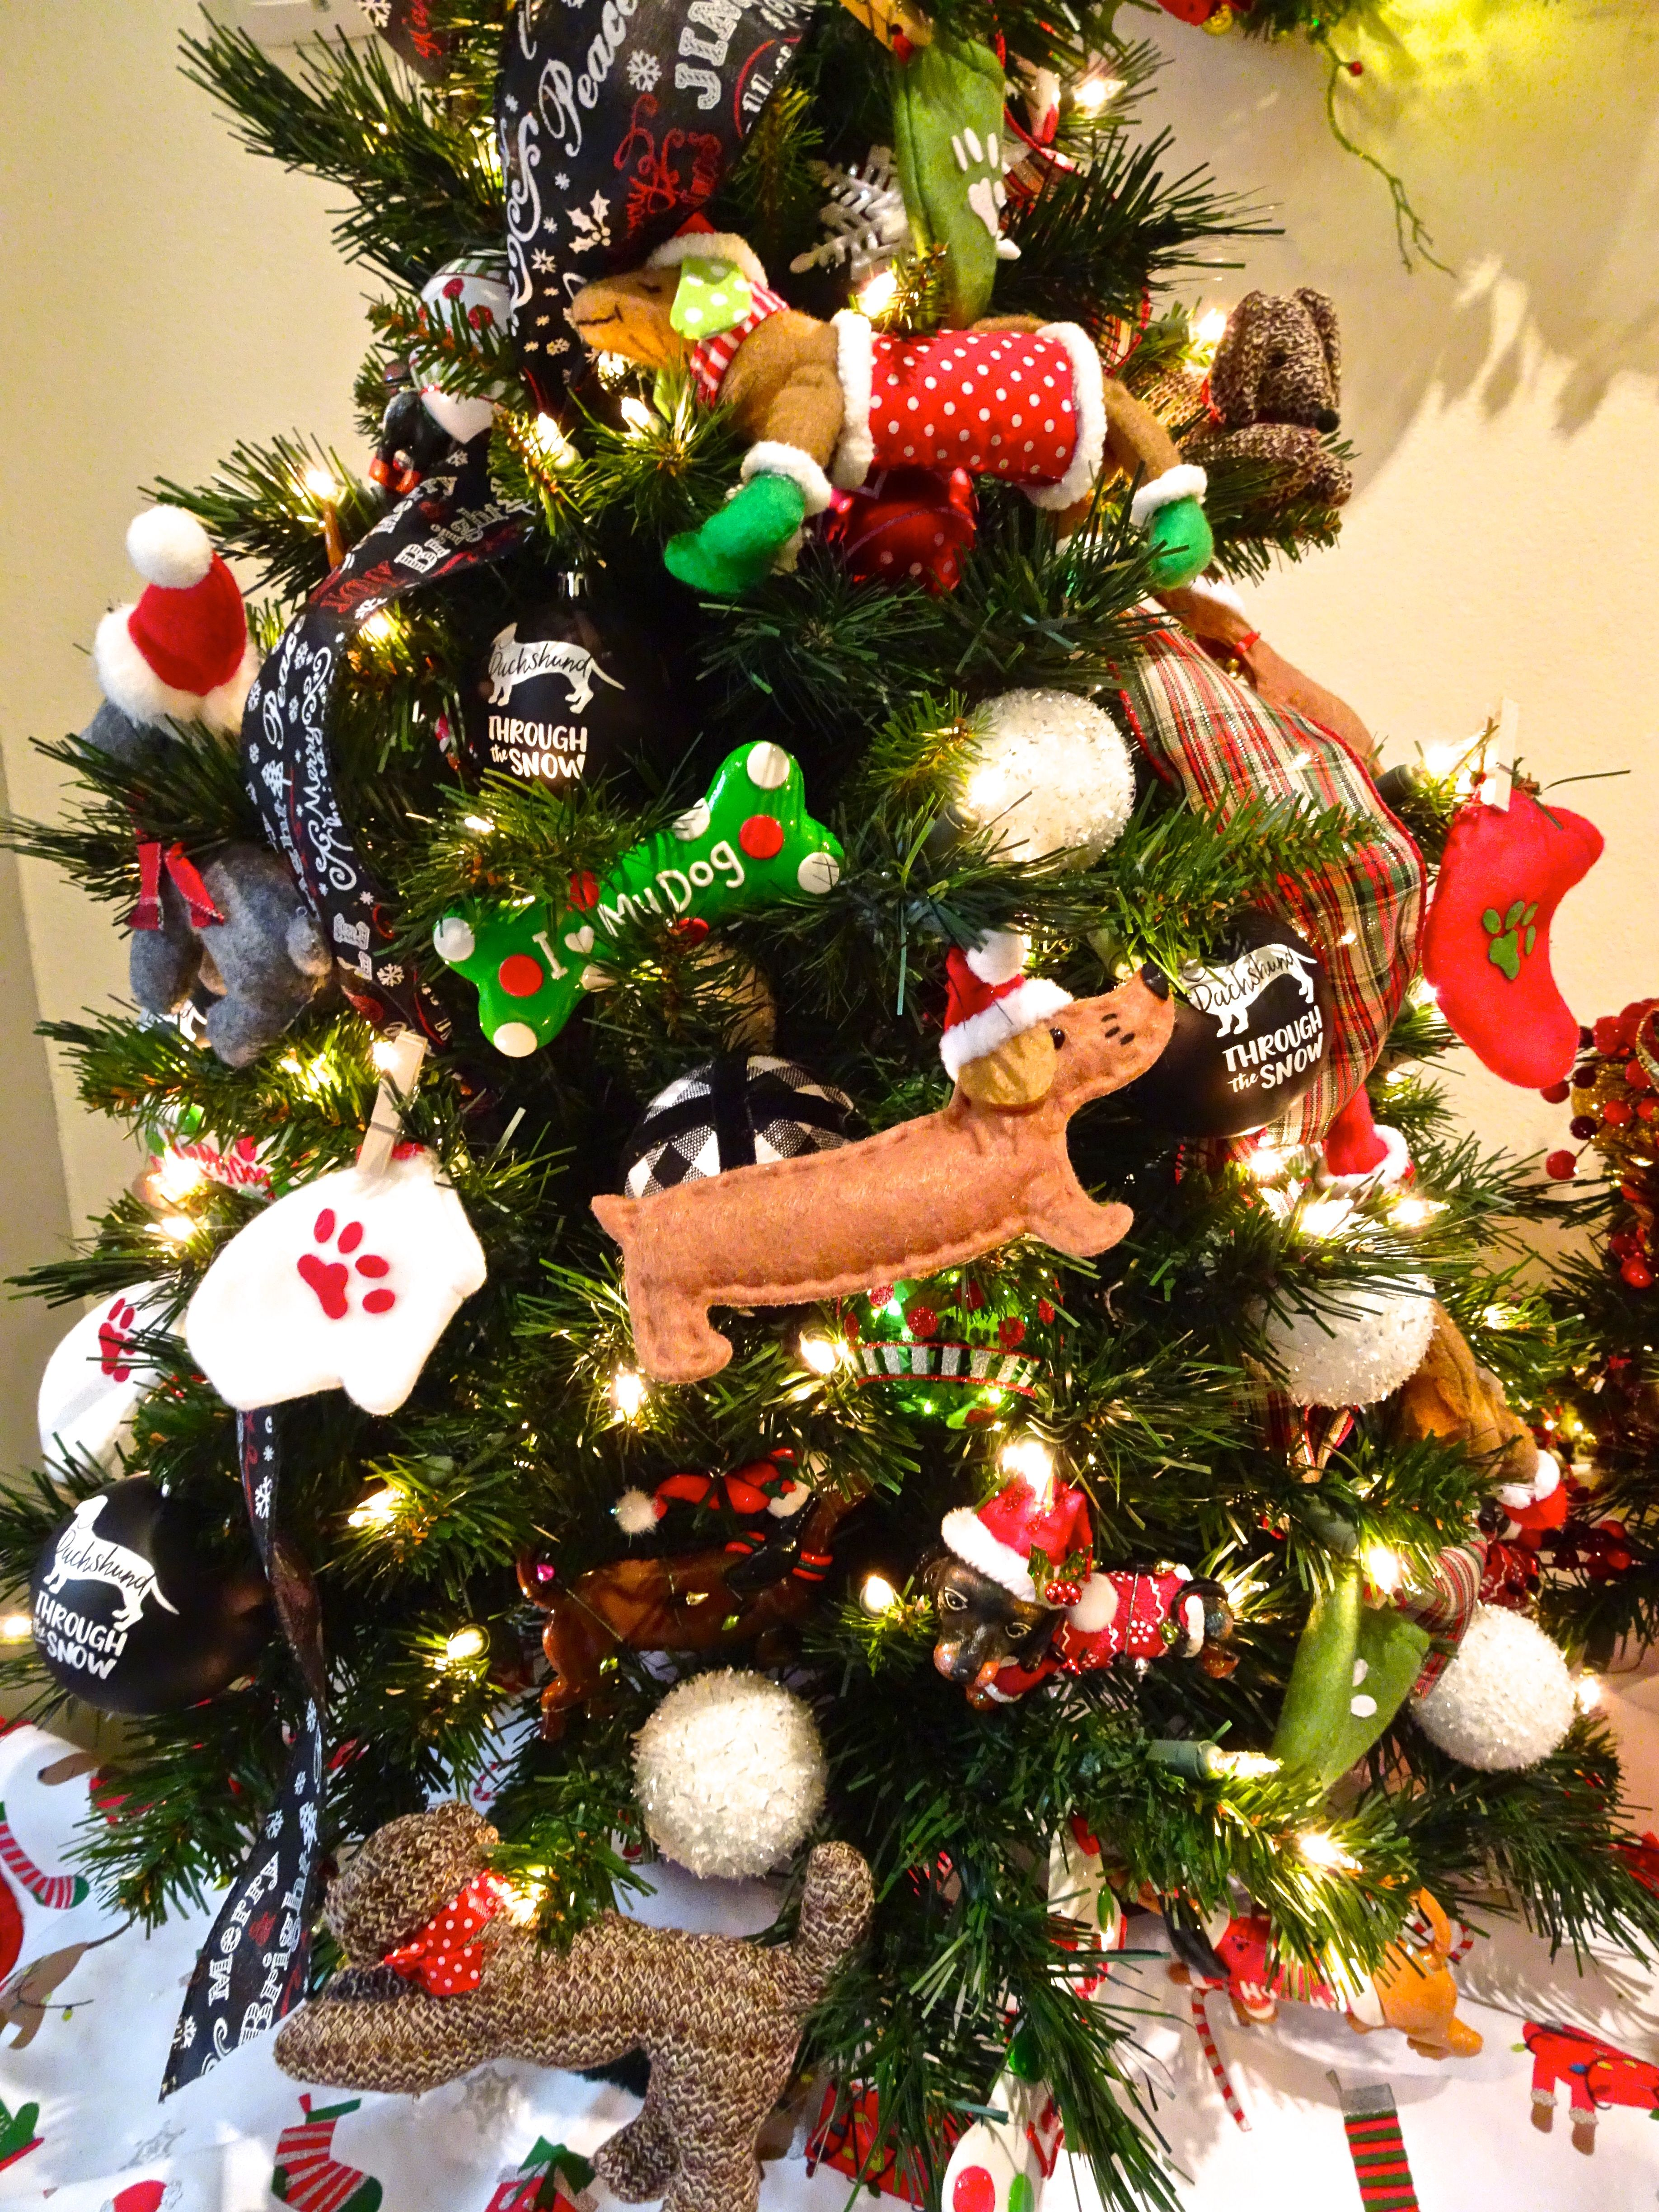 Festival Of Trees Orlando Museum Of Art Celebrating 30 Years Funandfork In 2020 Christmas Tree Themes Christmas Tree Dog Christmas Tree Design